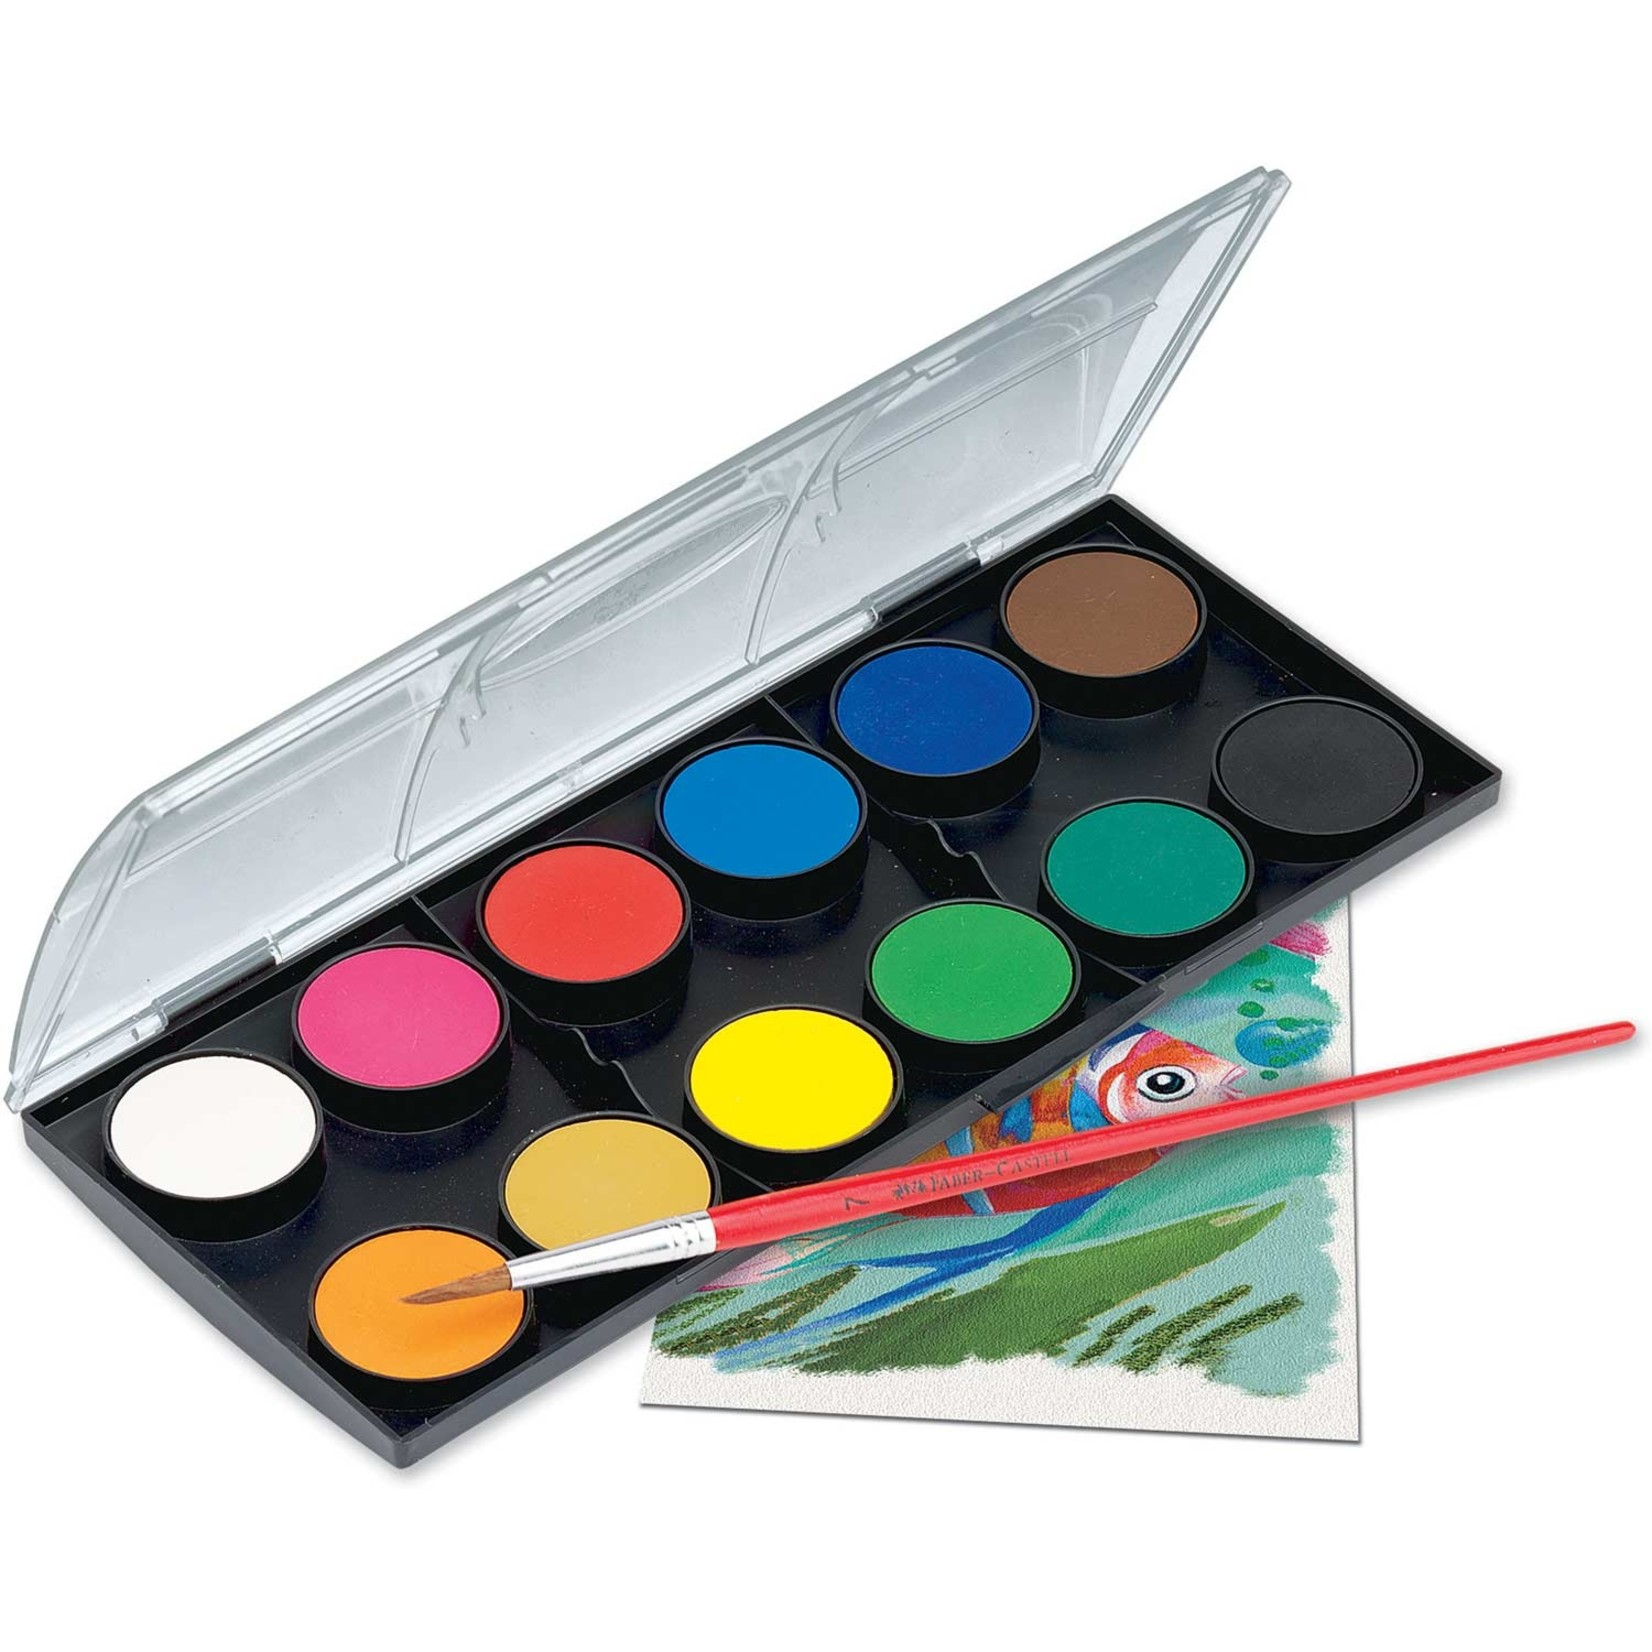 FABER-CASTELL WATERCOLOR PAINT SET CAKES WITH BRUSH